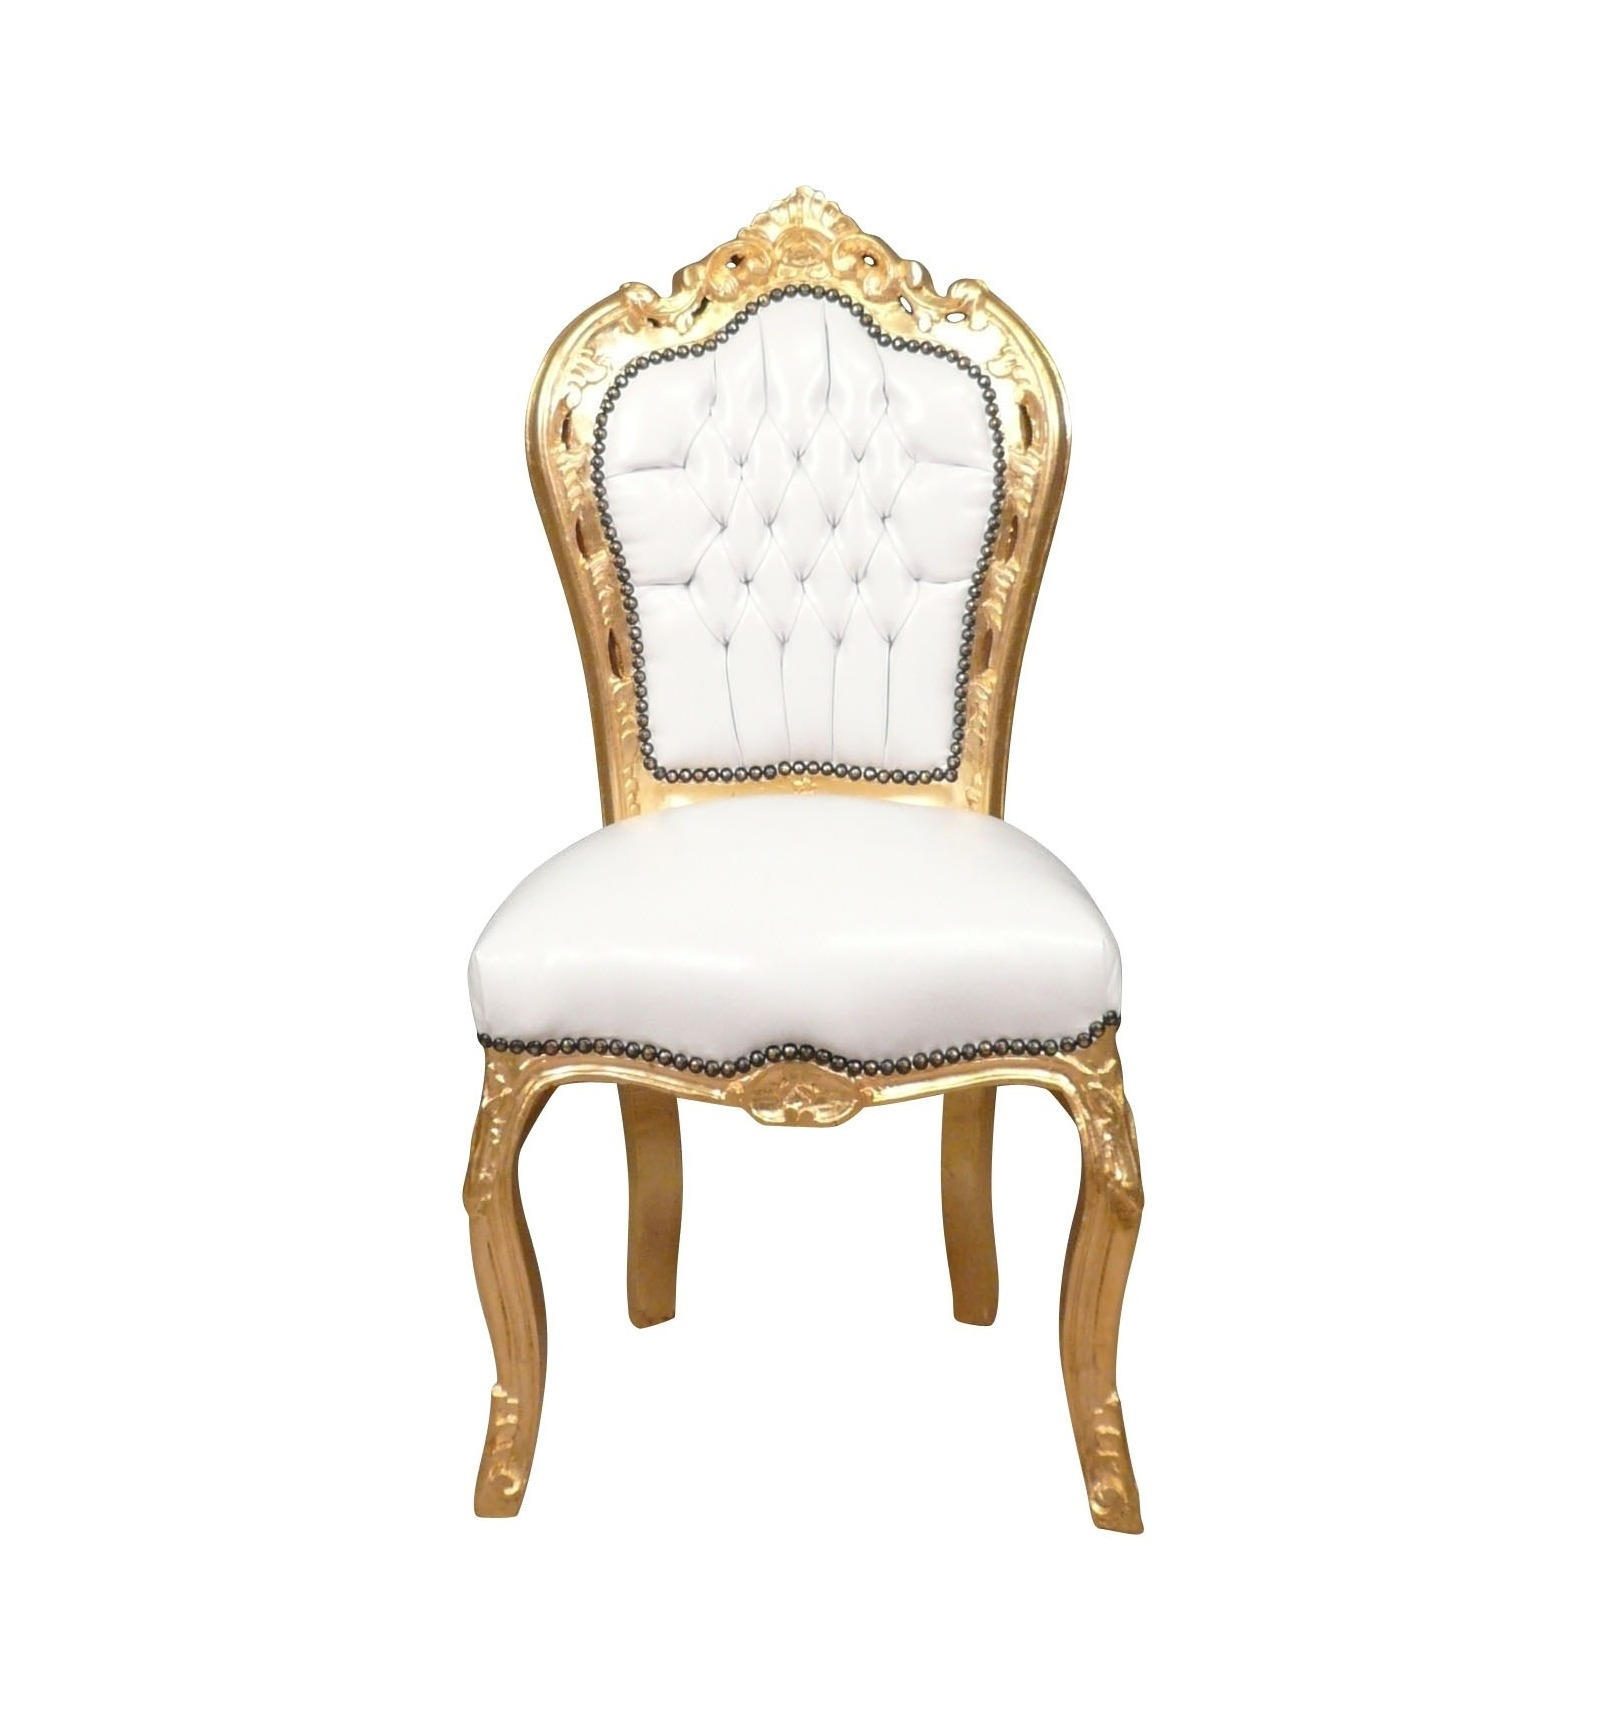 Chair baroque white solid wood golden white furniture - Chaise baroque argentee ...